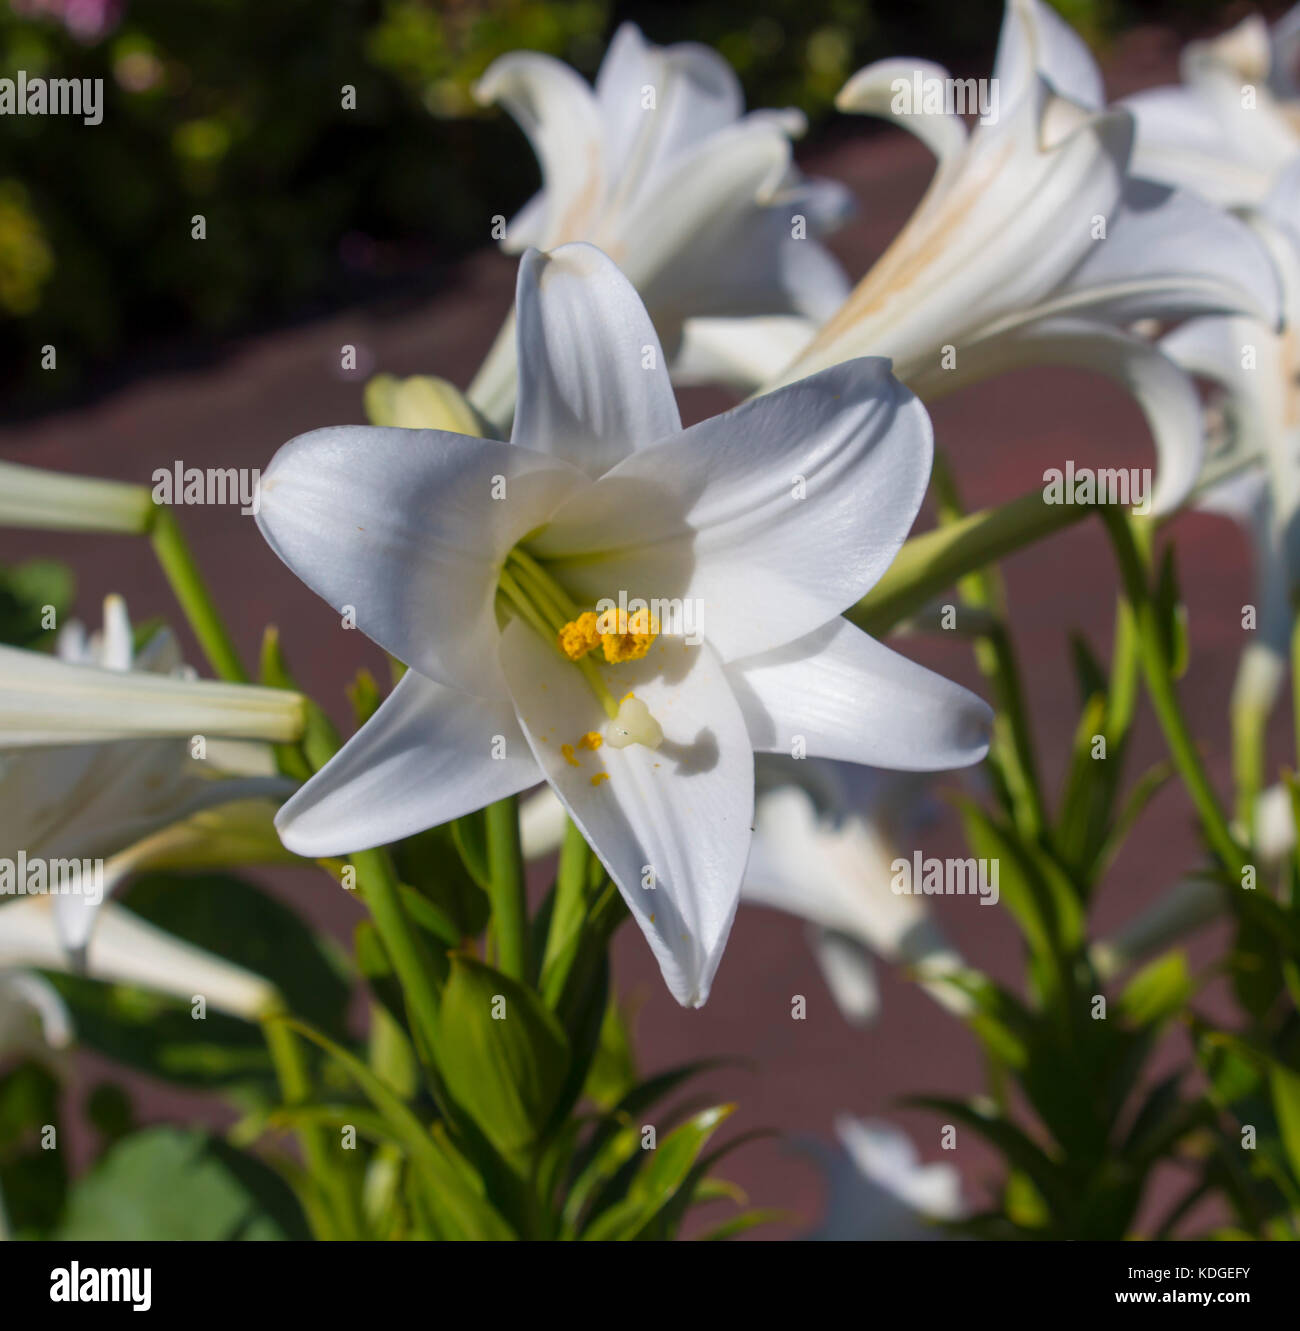 Glorious lilium candidum madonna lily a plant in the genus lilium glorious lilium candidum madonna lily a plant in the genus lilium one of the true lilies flowering in late spring is a decorative bloom izmirmasajfo Gallery